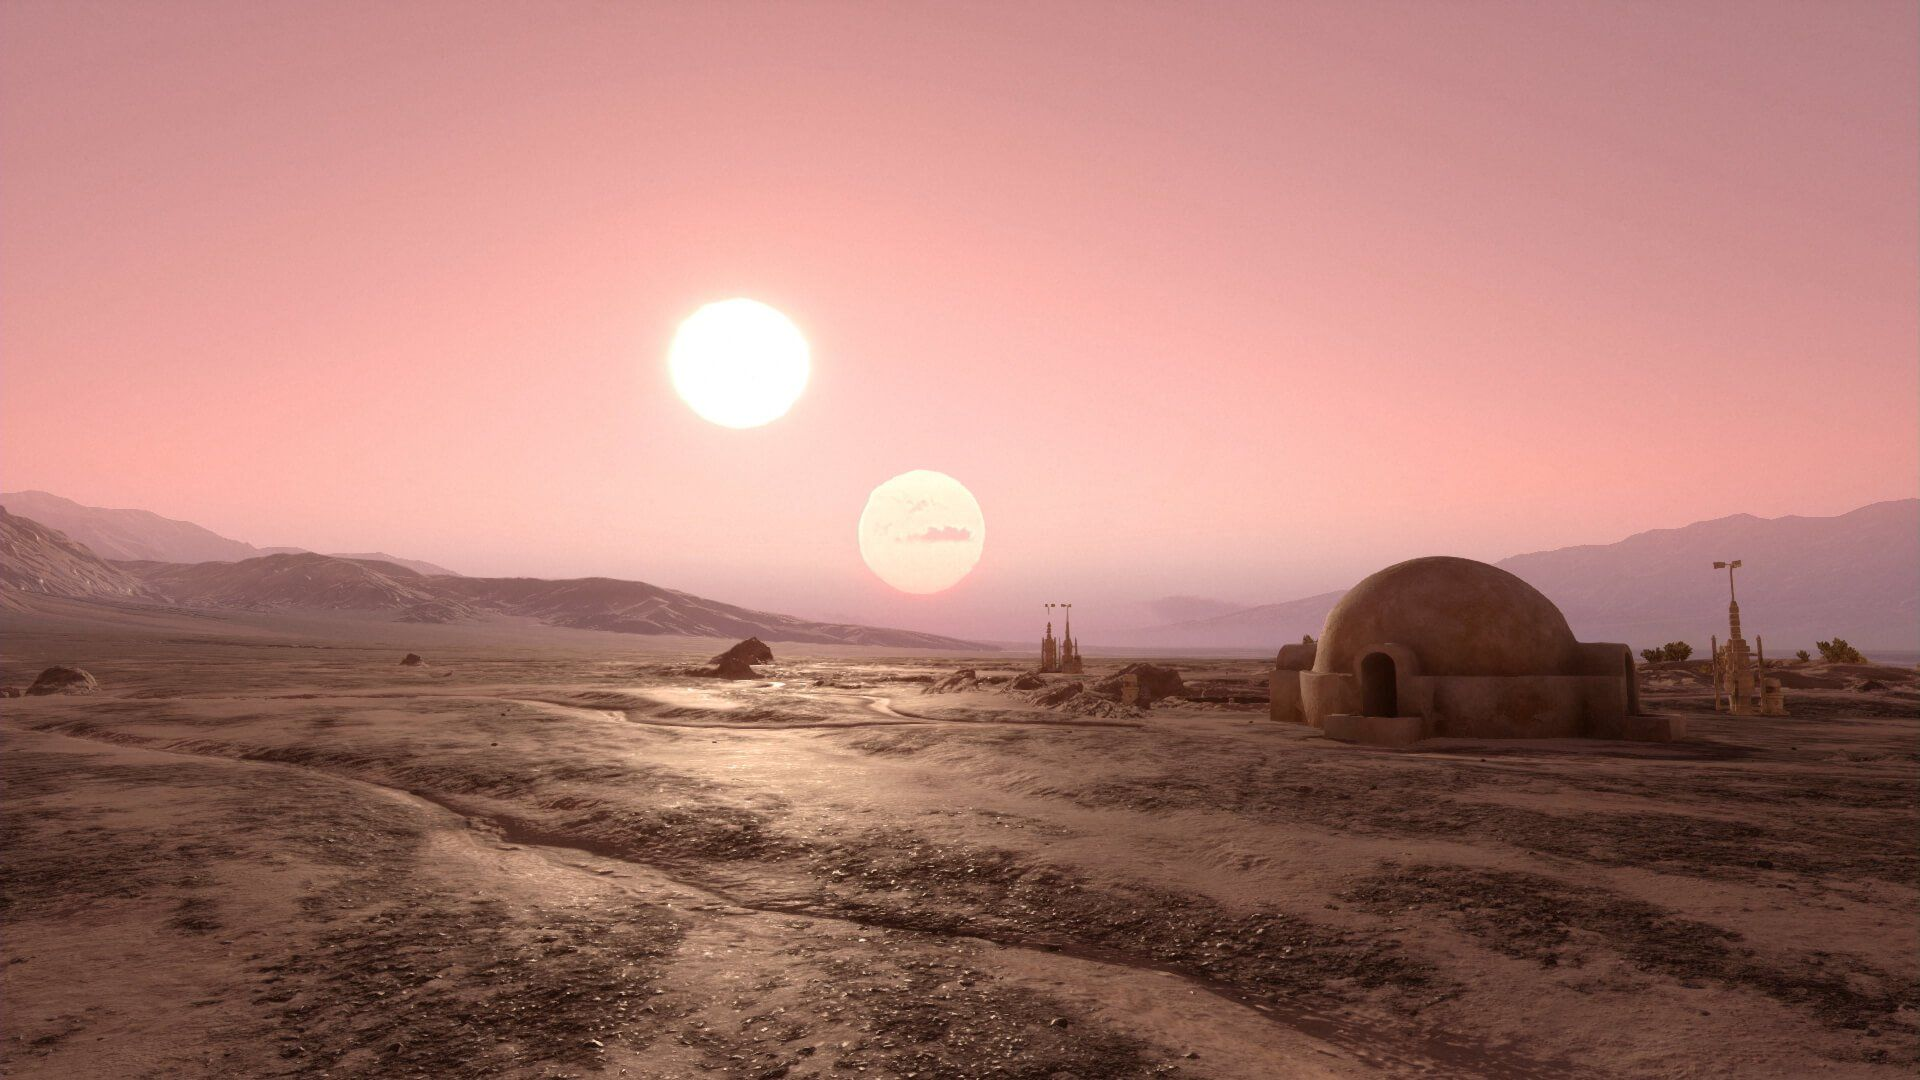 Millennium Falcon Over Tatooine Wallpapers Hd Wallpapers Pinterest Wallpaper And Hd Wallpaper